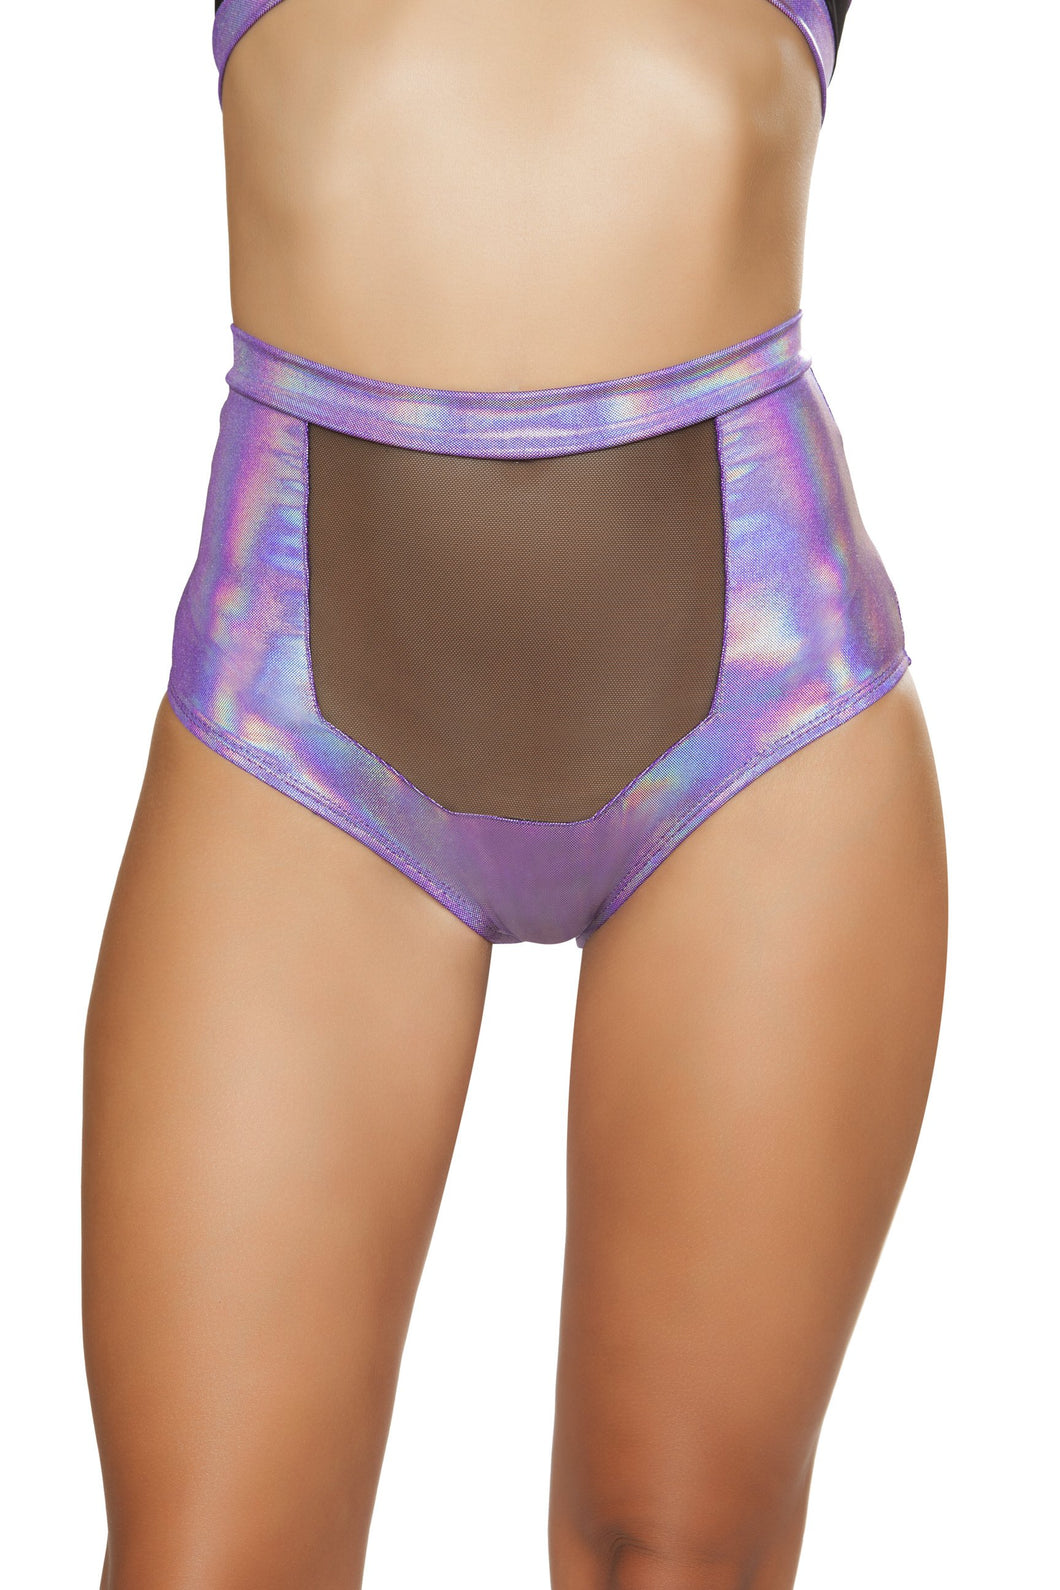 3610 - Purple - 1pc High-Waisted Short with Sheer Panel and Cross Back